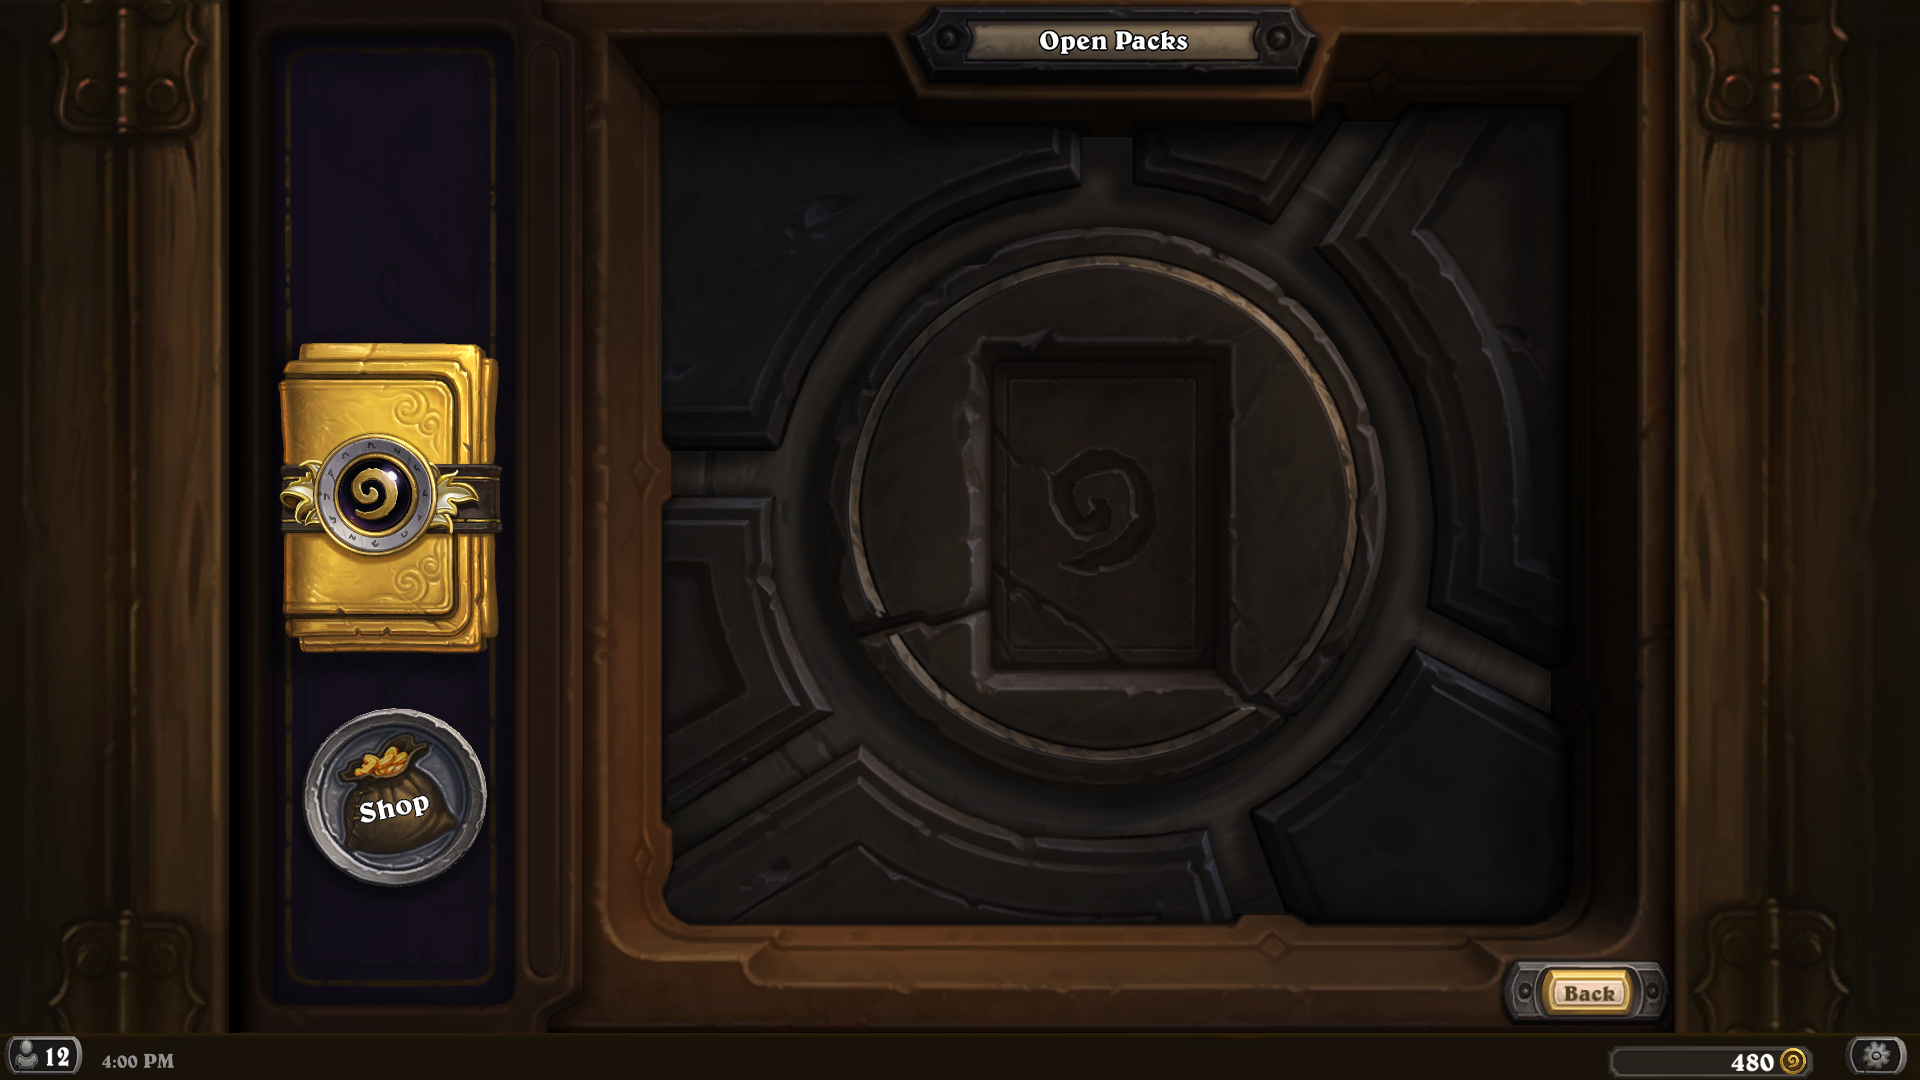 The All Golden Classic Pack - Now Available for Free to